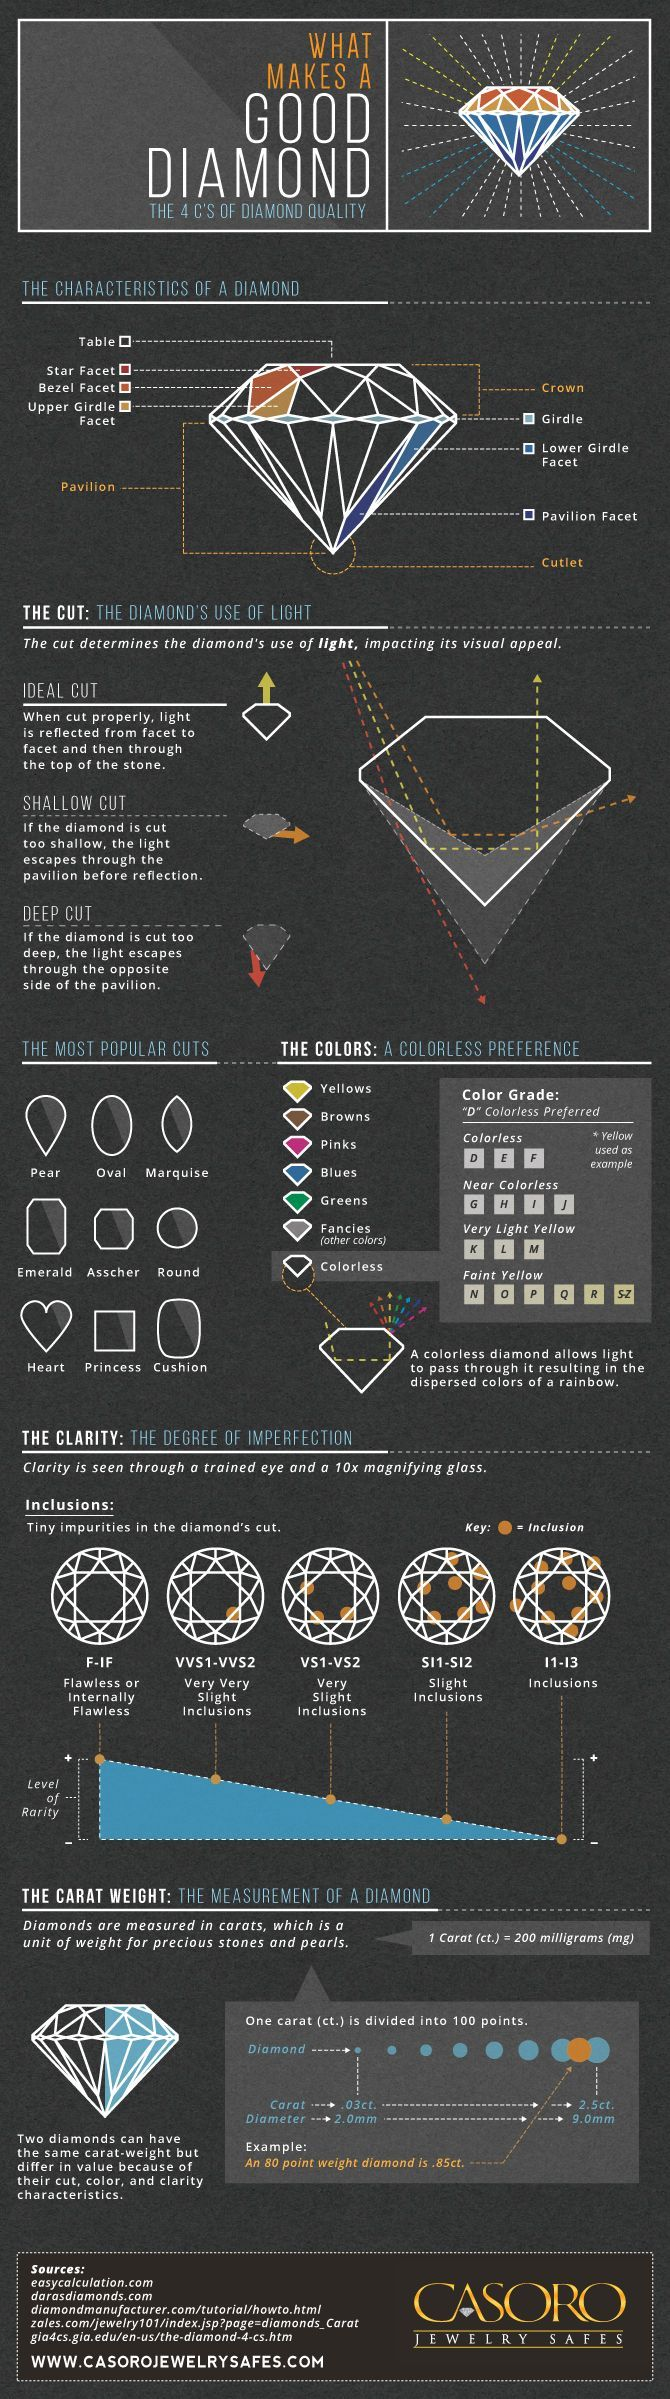 What Makes a Good Diamond Infographic -  CASORO Jewelry Safes - I love a good infographic!